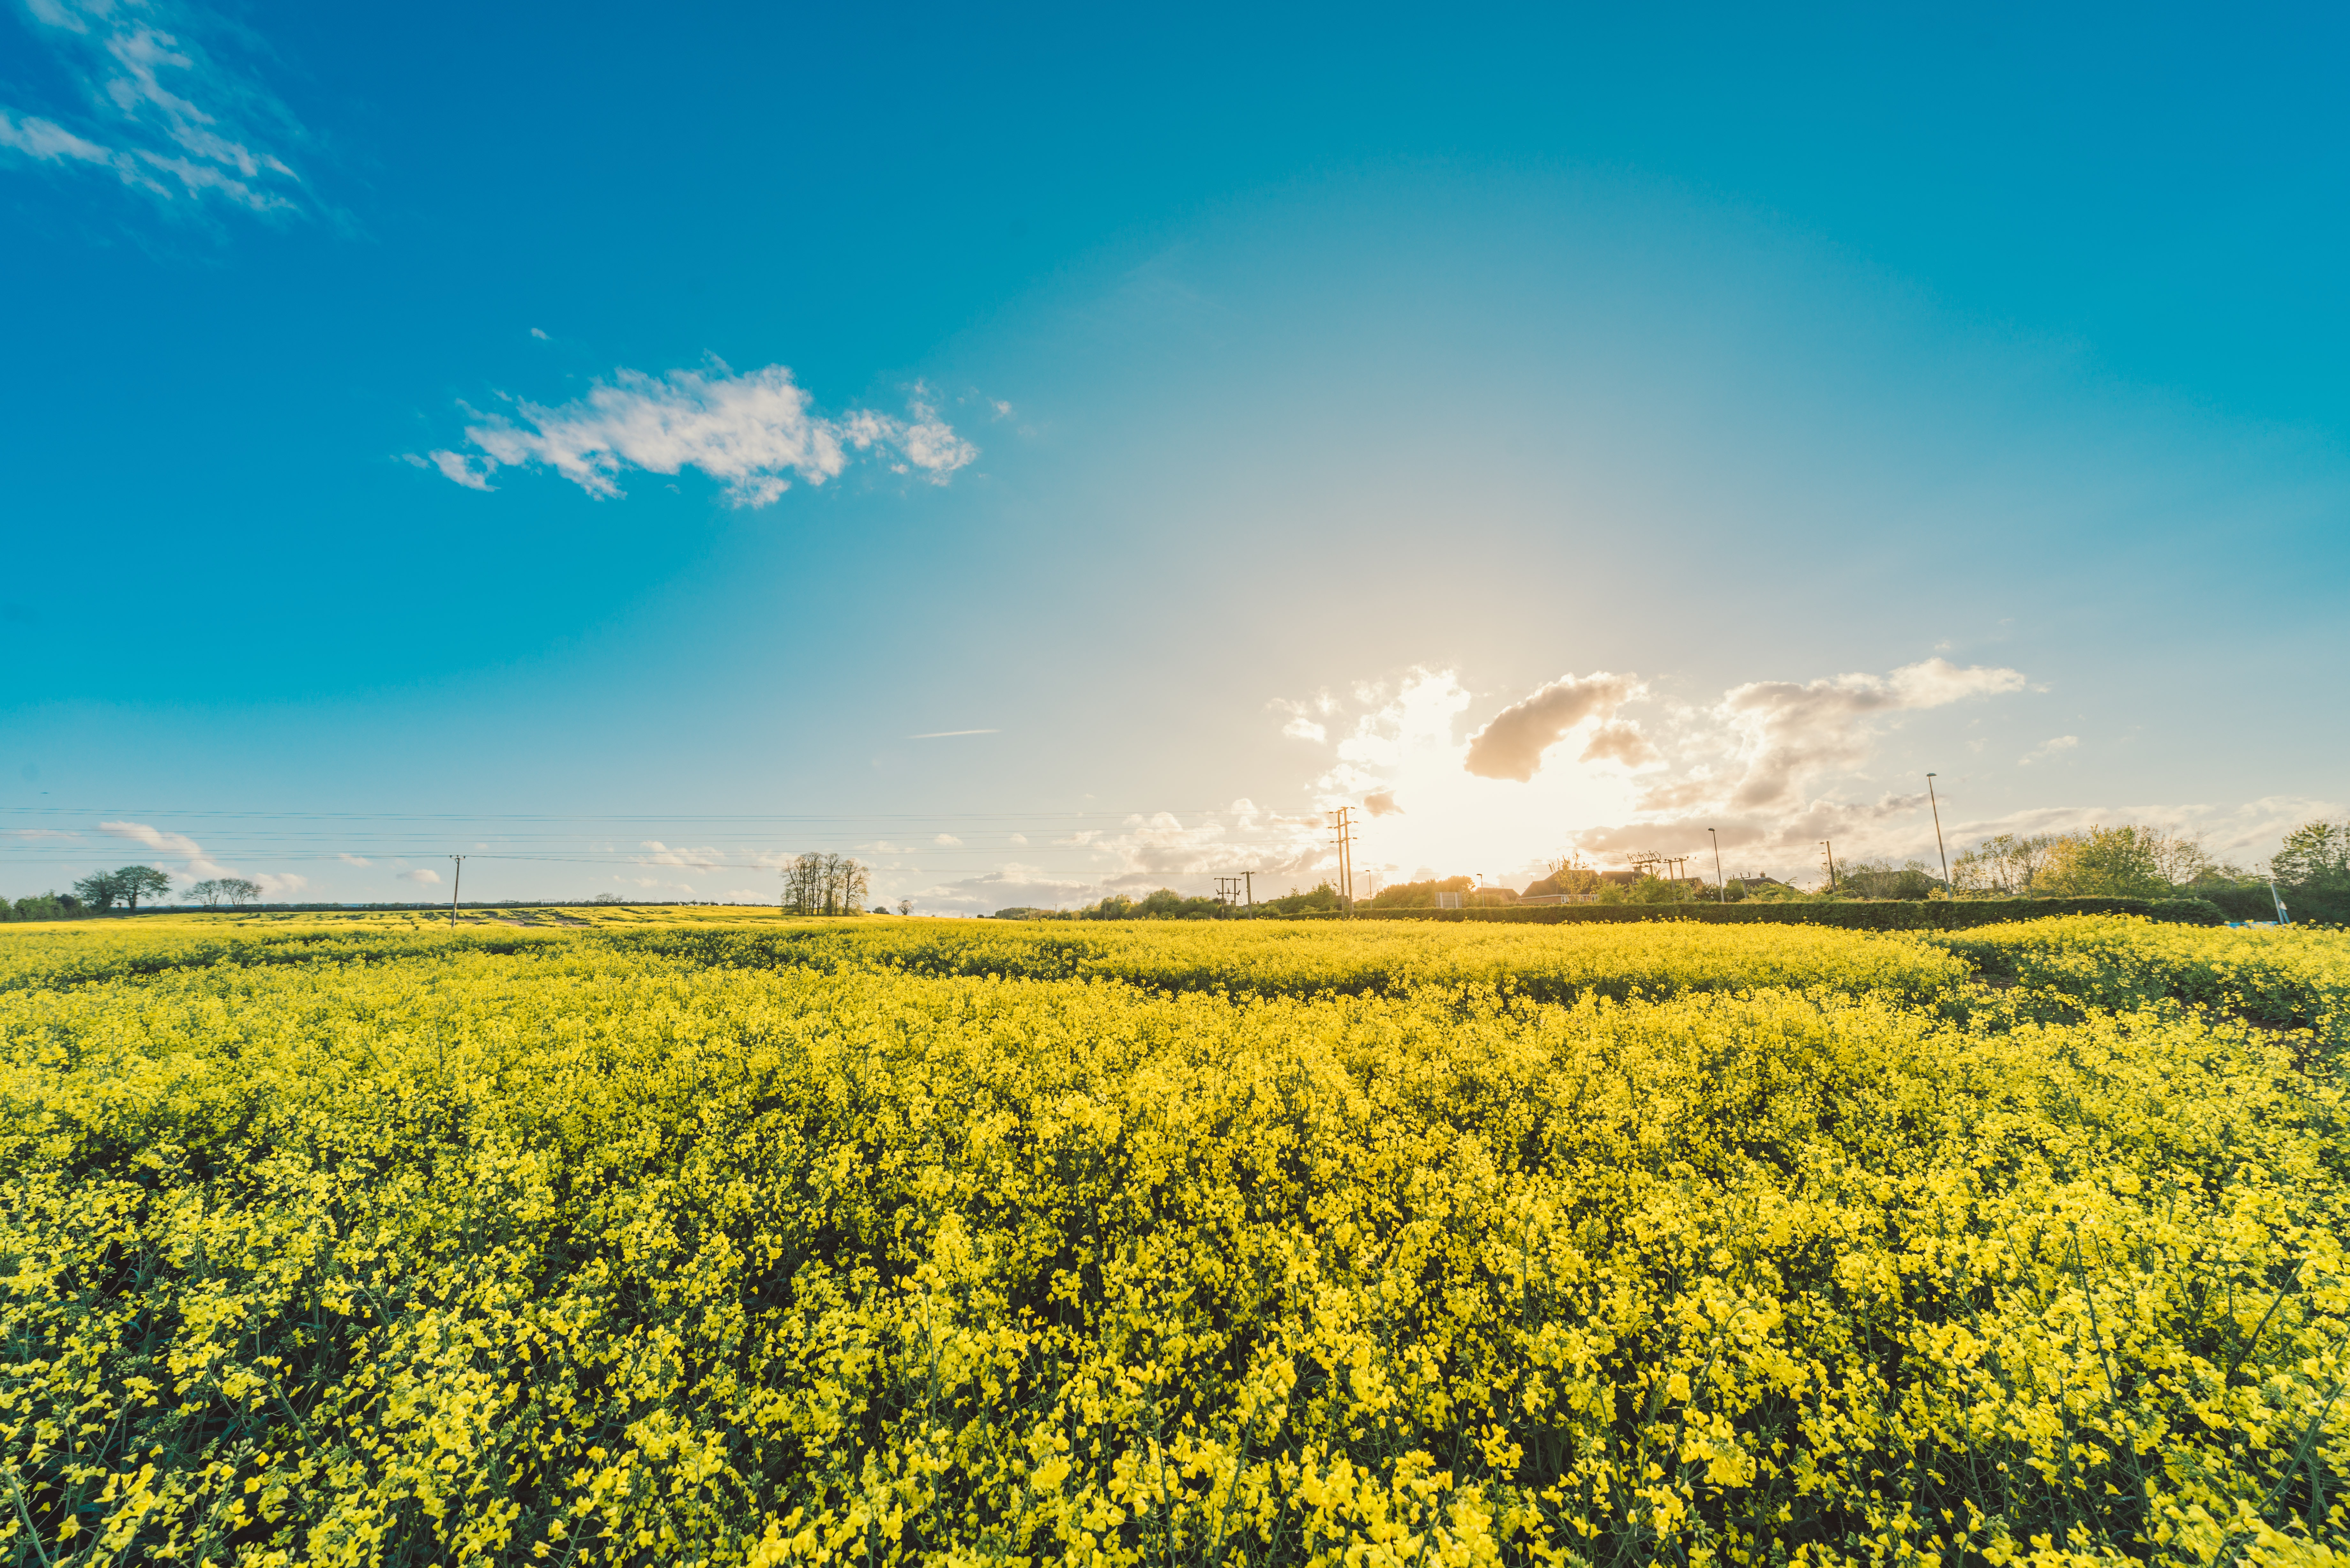 Yellow Flower Field Under Blue Cloudy Sky During Daytime Free